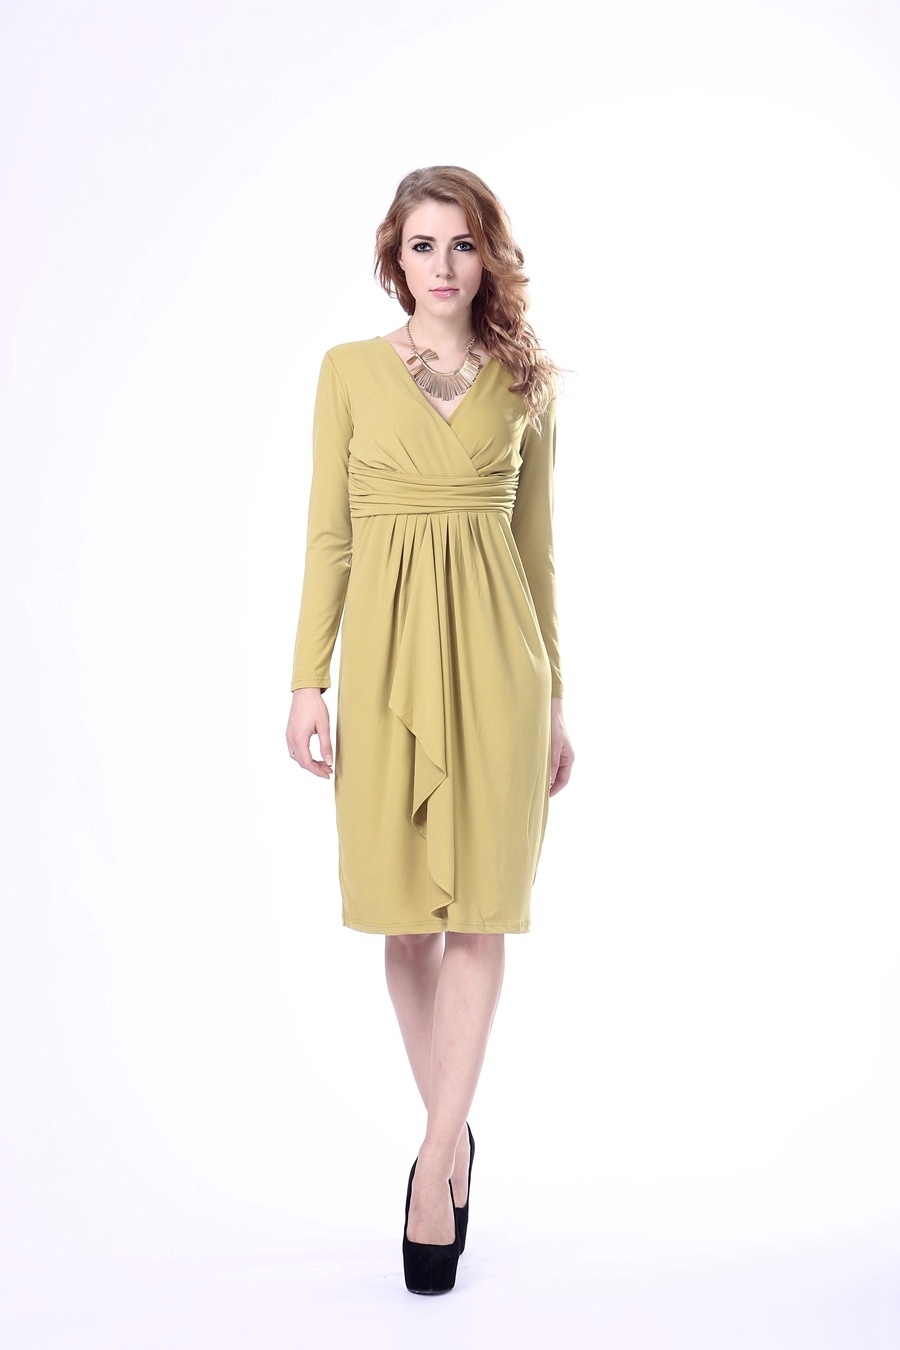 Lady Dress Long Sleeve Gentle Women Dress